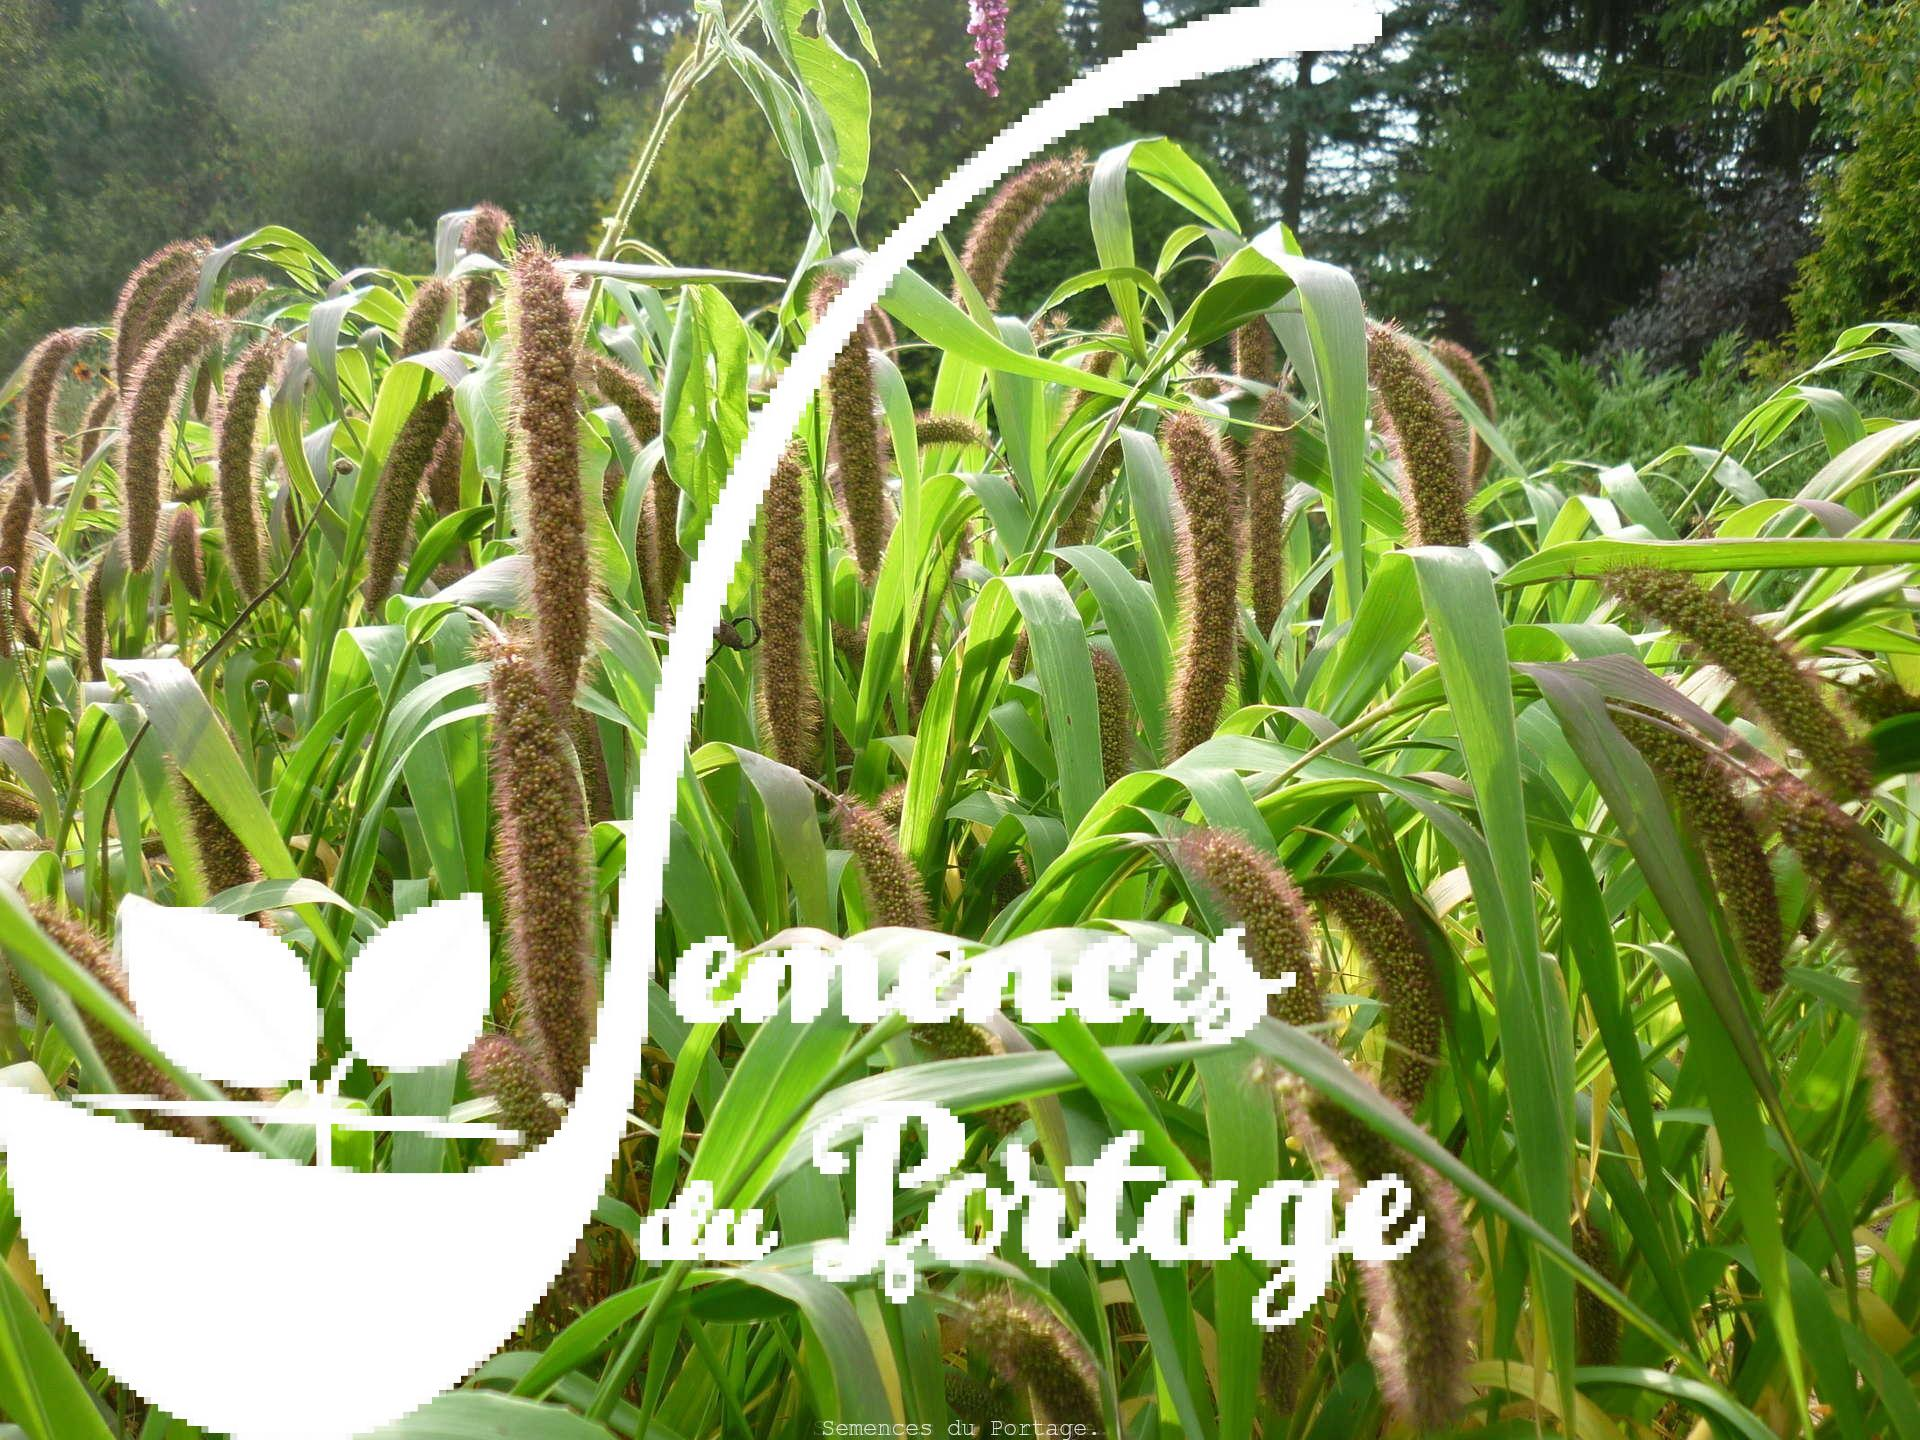 Millet japonais semences du portage for Catalogue de plantes